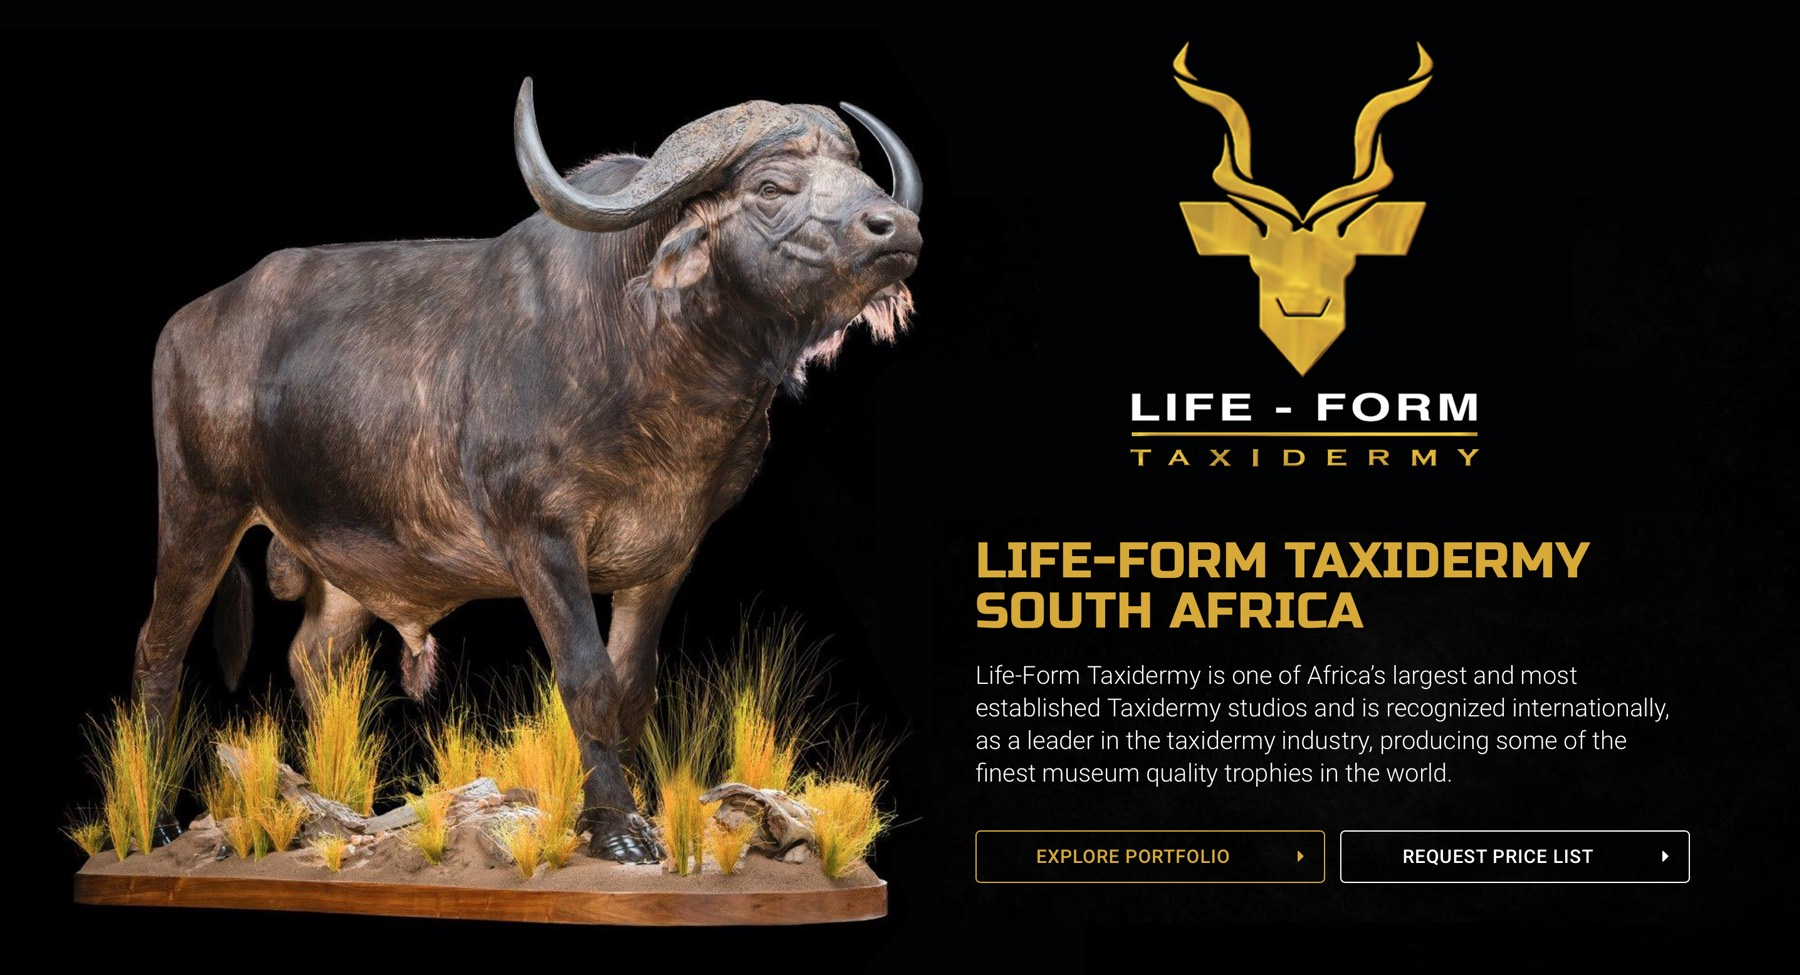 life-form-taxidermy-01.jpg